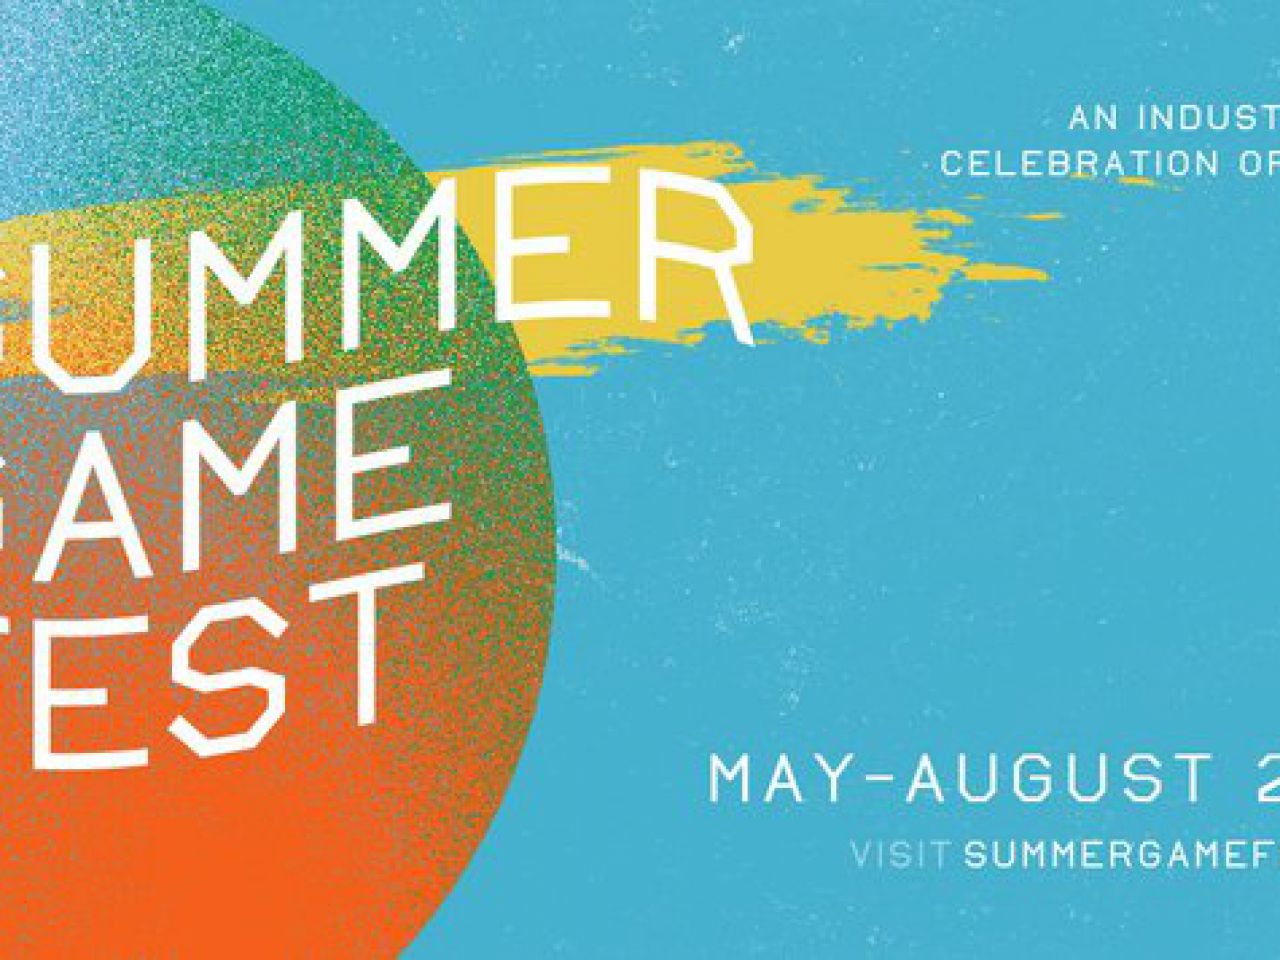 Annunciato Il Summer Game Fest Evento Digitale Con Playstation Xbox E Molti Altri